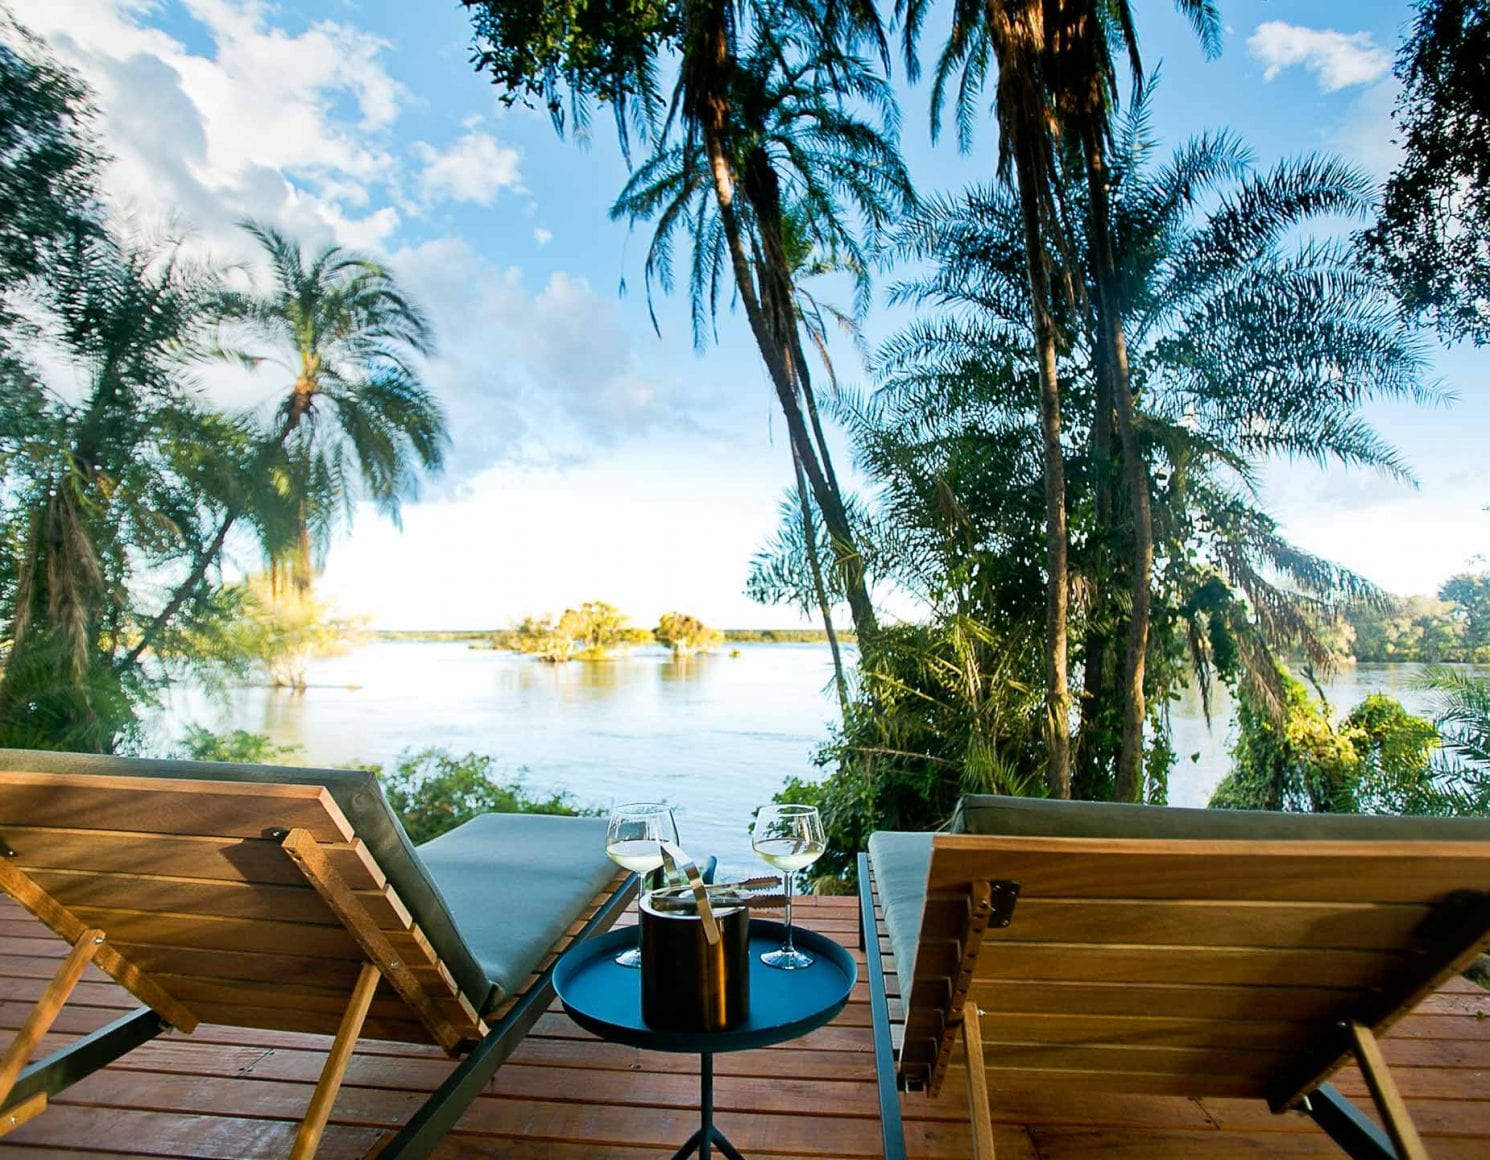 Chairs on deck overlooking river